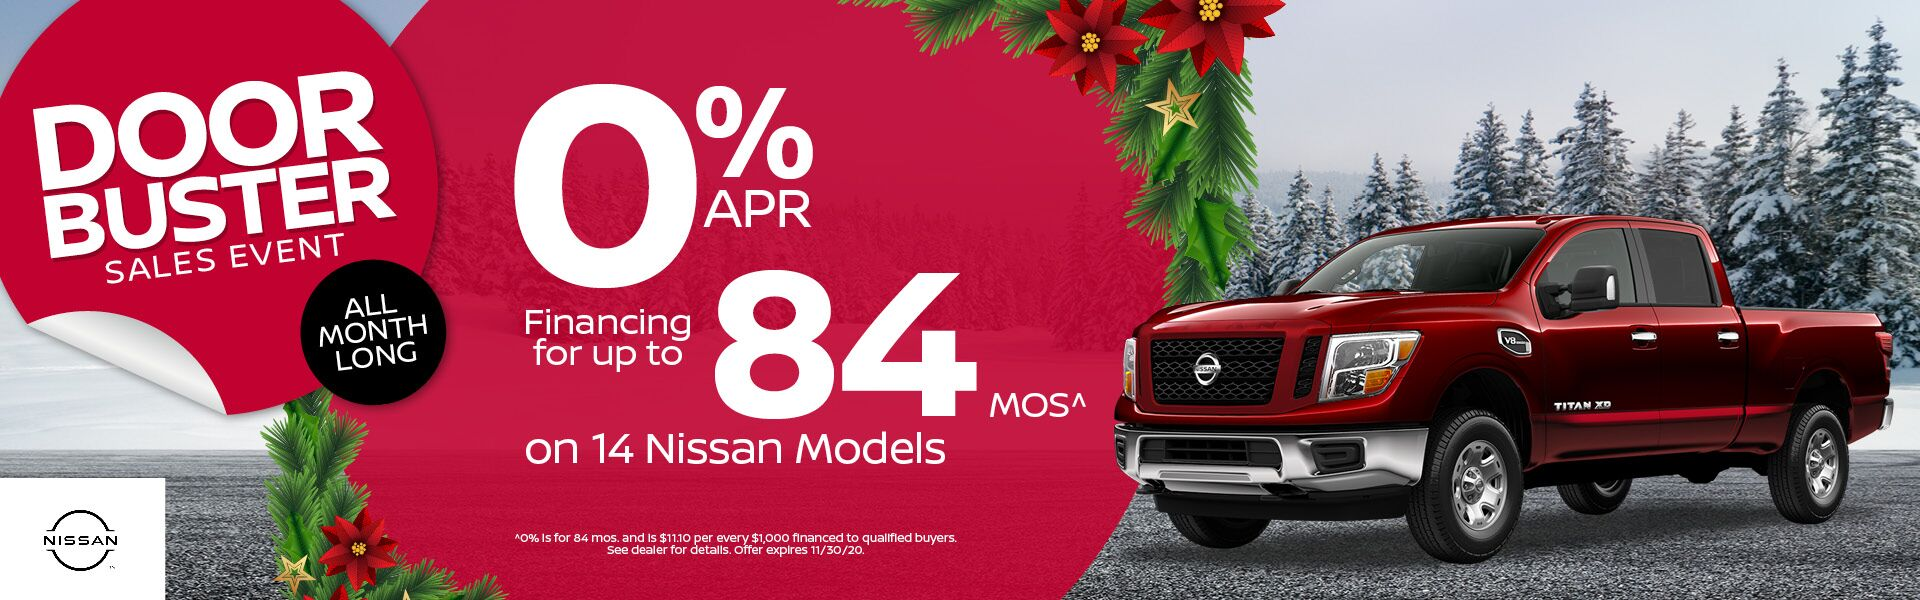 0% for up to 84 mos on 14 Nissan Models